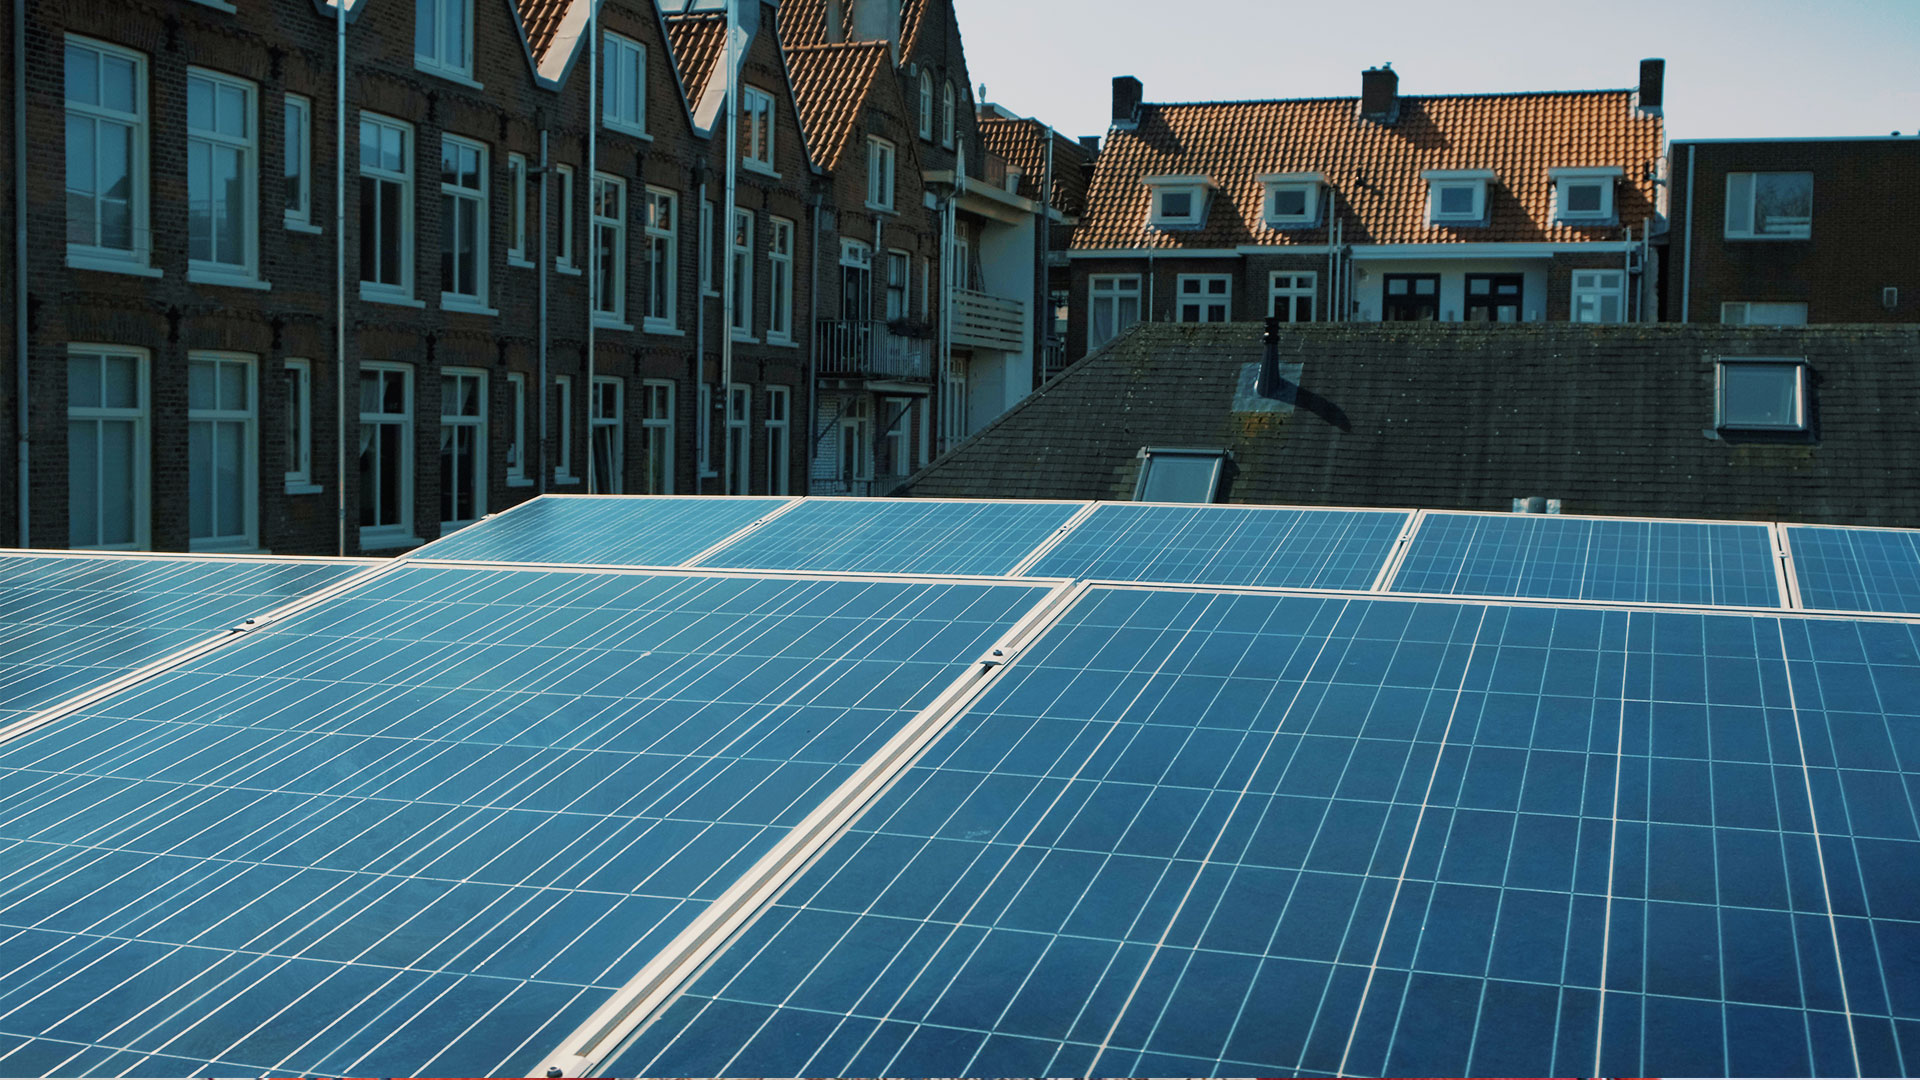 Solar Power - The sun generates more electricity in one hour then the world needs in an entire year. The solar panels on top of The Conscious Club cover their full usage of electricity. Eneco supplied this innovative system, to make sure The Conscious Club is self sufficient and ready for the future.